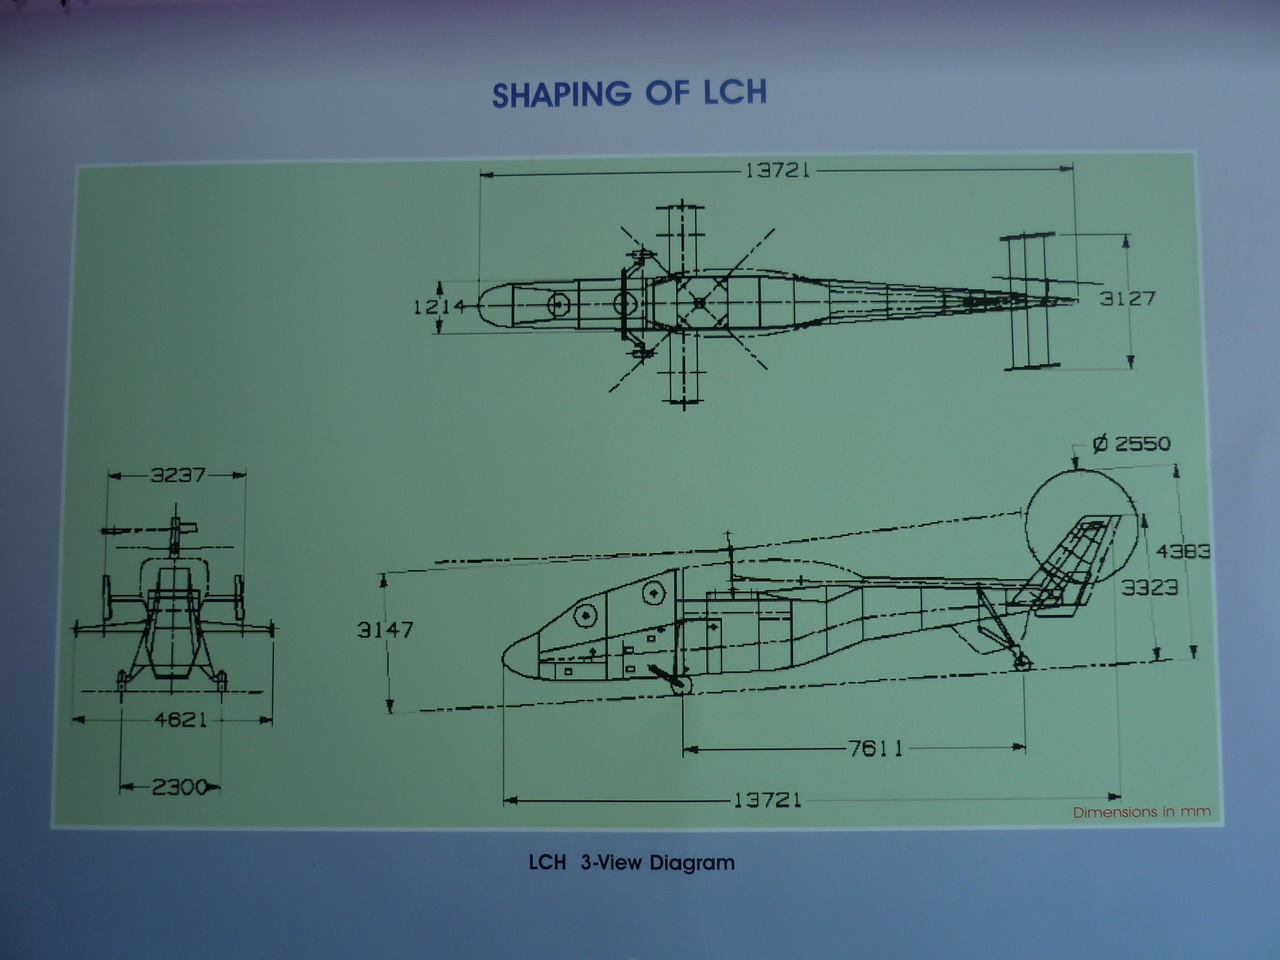 helicopter in india with Schematics Of Indias Light  Bat on Plane Spotting Helicopters Indian Air Force together with City Of Change besides File AH 64A Apache Greek Army Stefanovikion 3 as well Printphoto in addition File Swiss Dauphin helicopter 4.